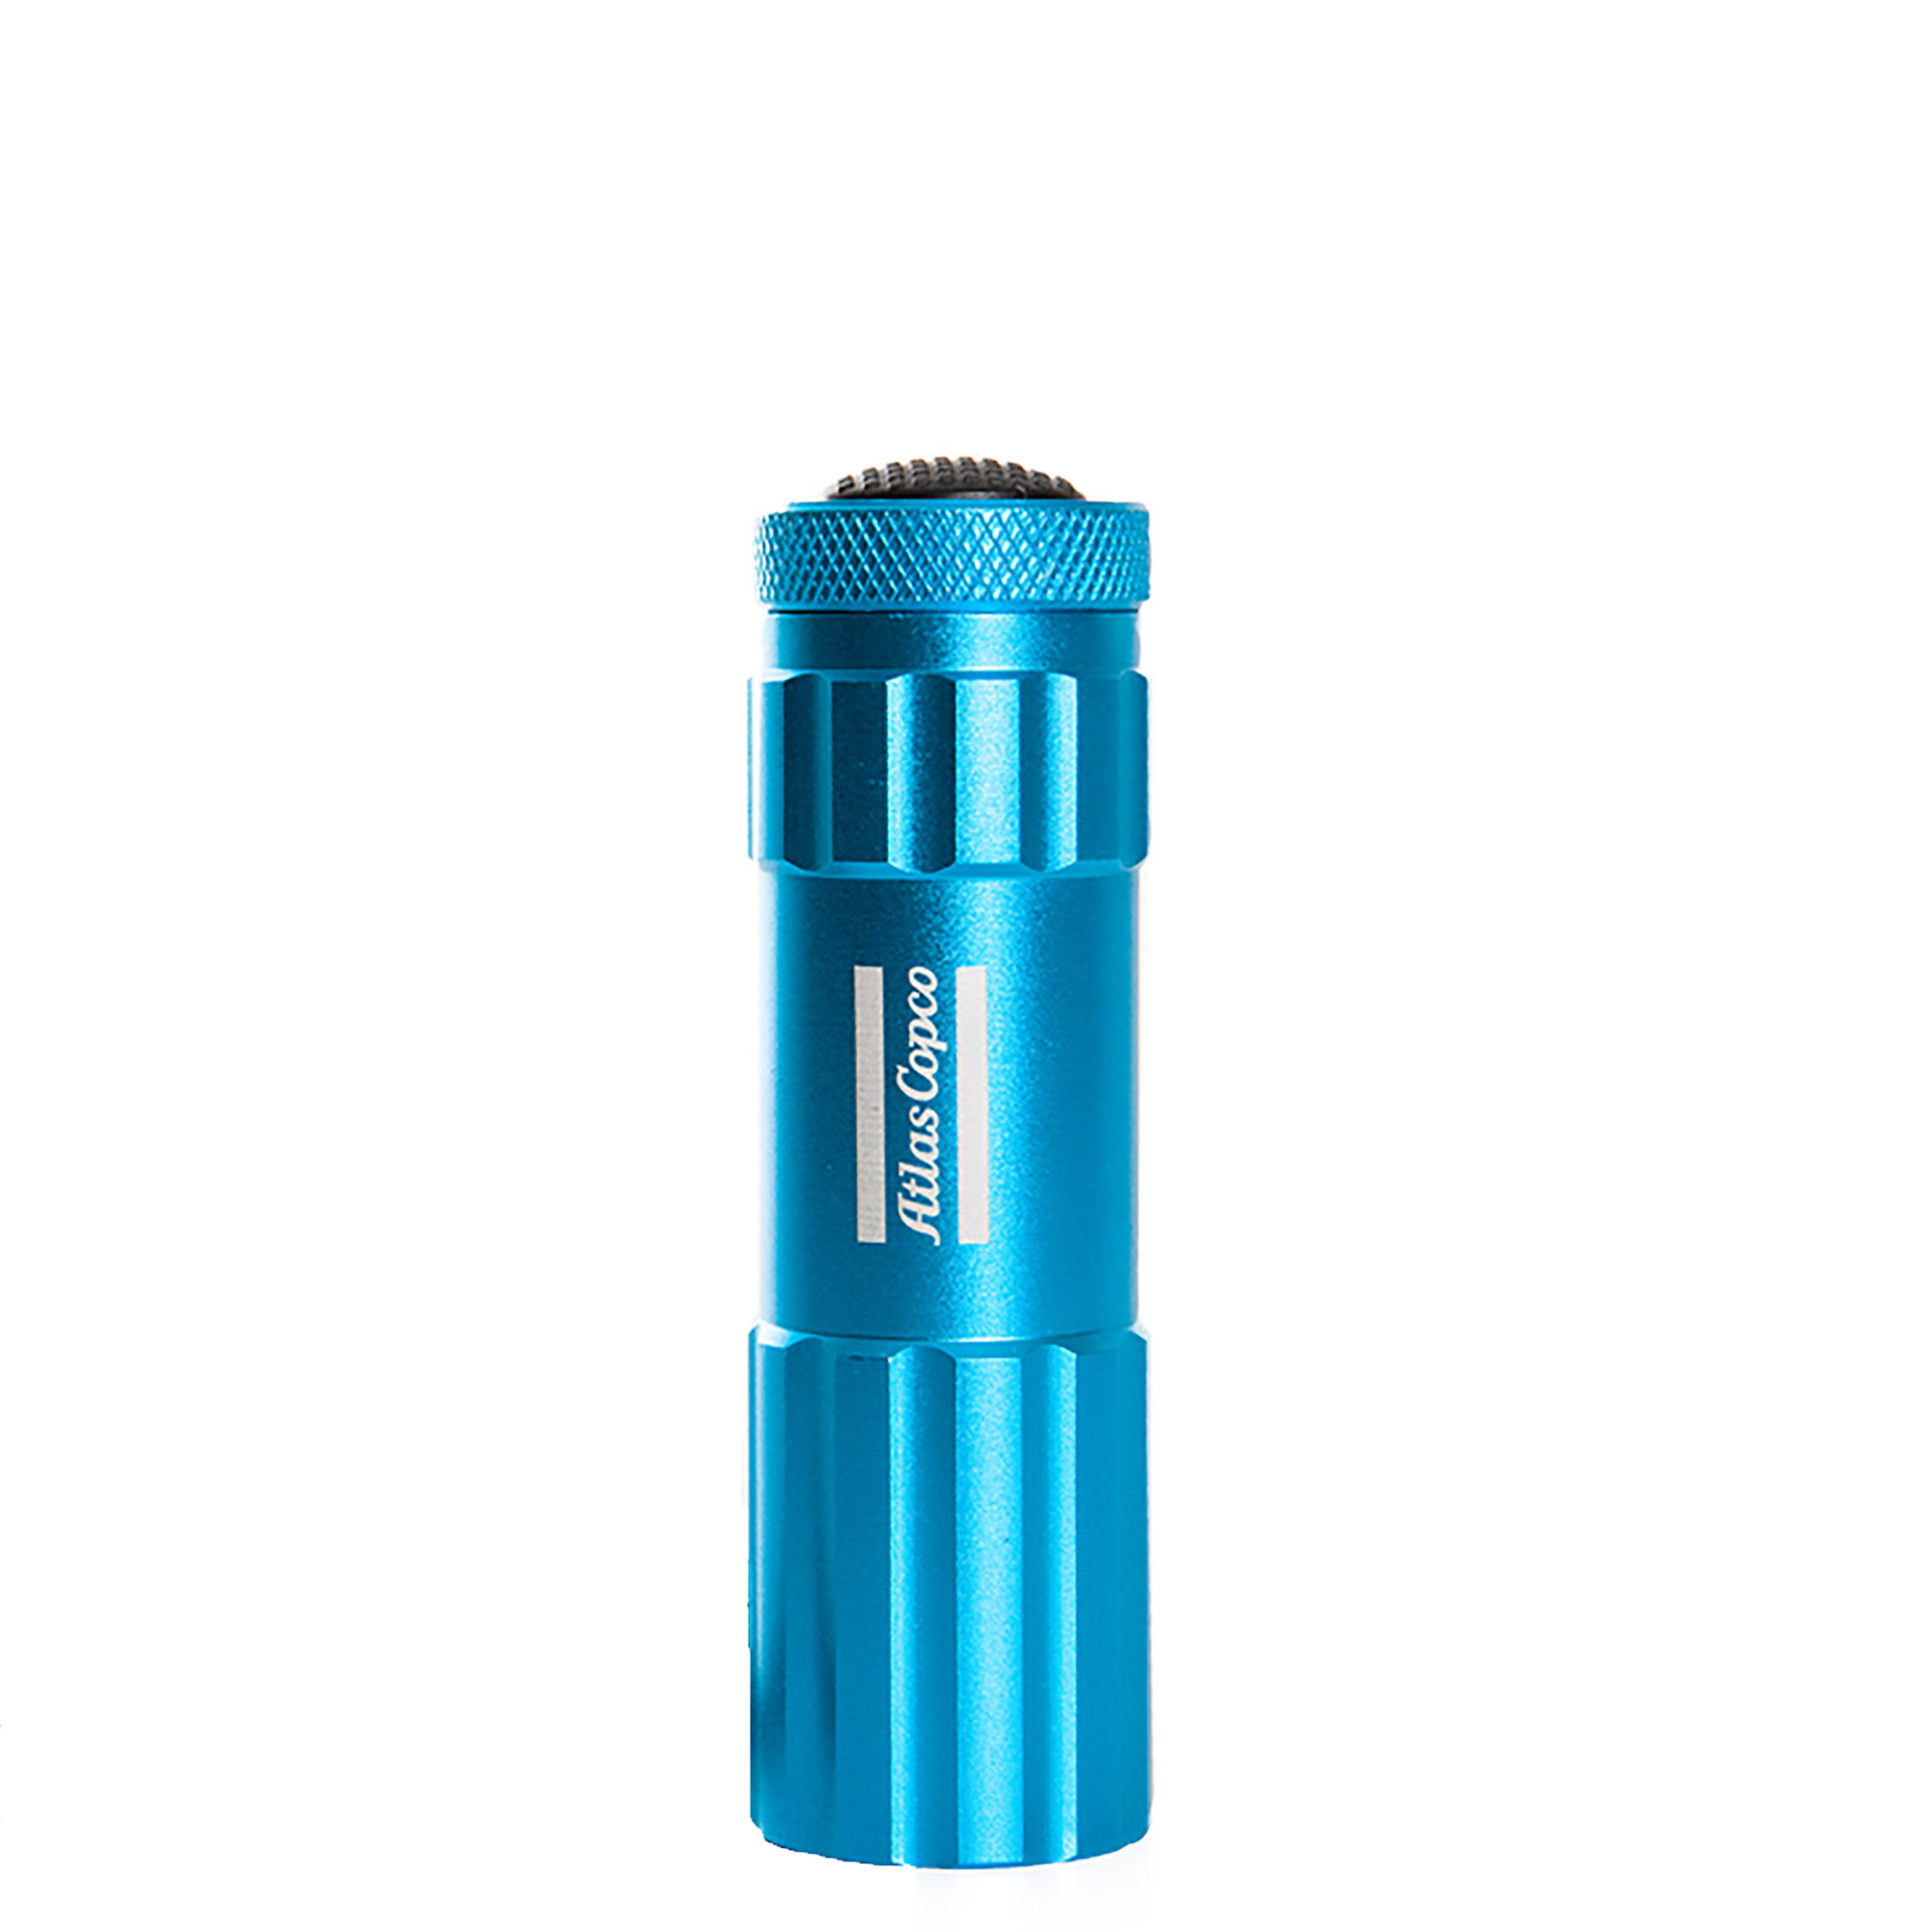 Flashlight made in one-piece aluminum with nine LED lights. The LED lights has a life span of 50 000 hours. Delivered in an Atlas Copco gift box.